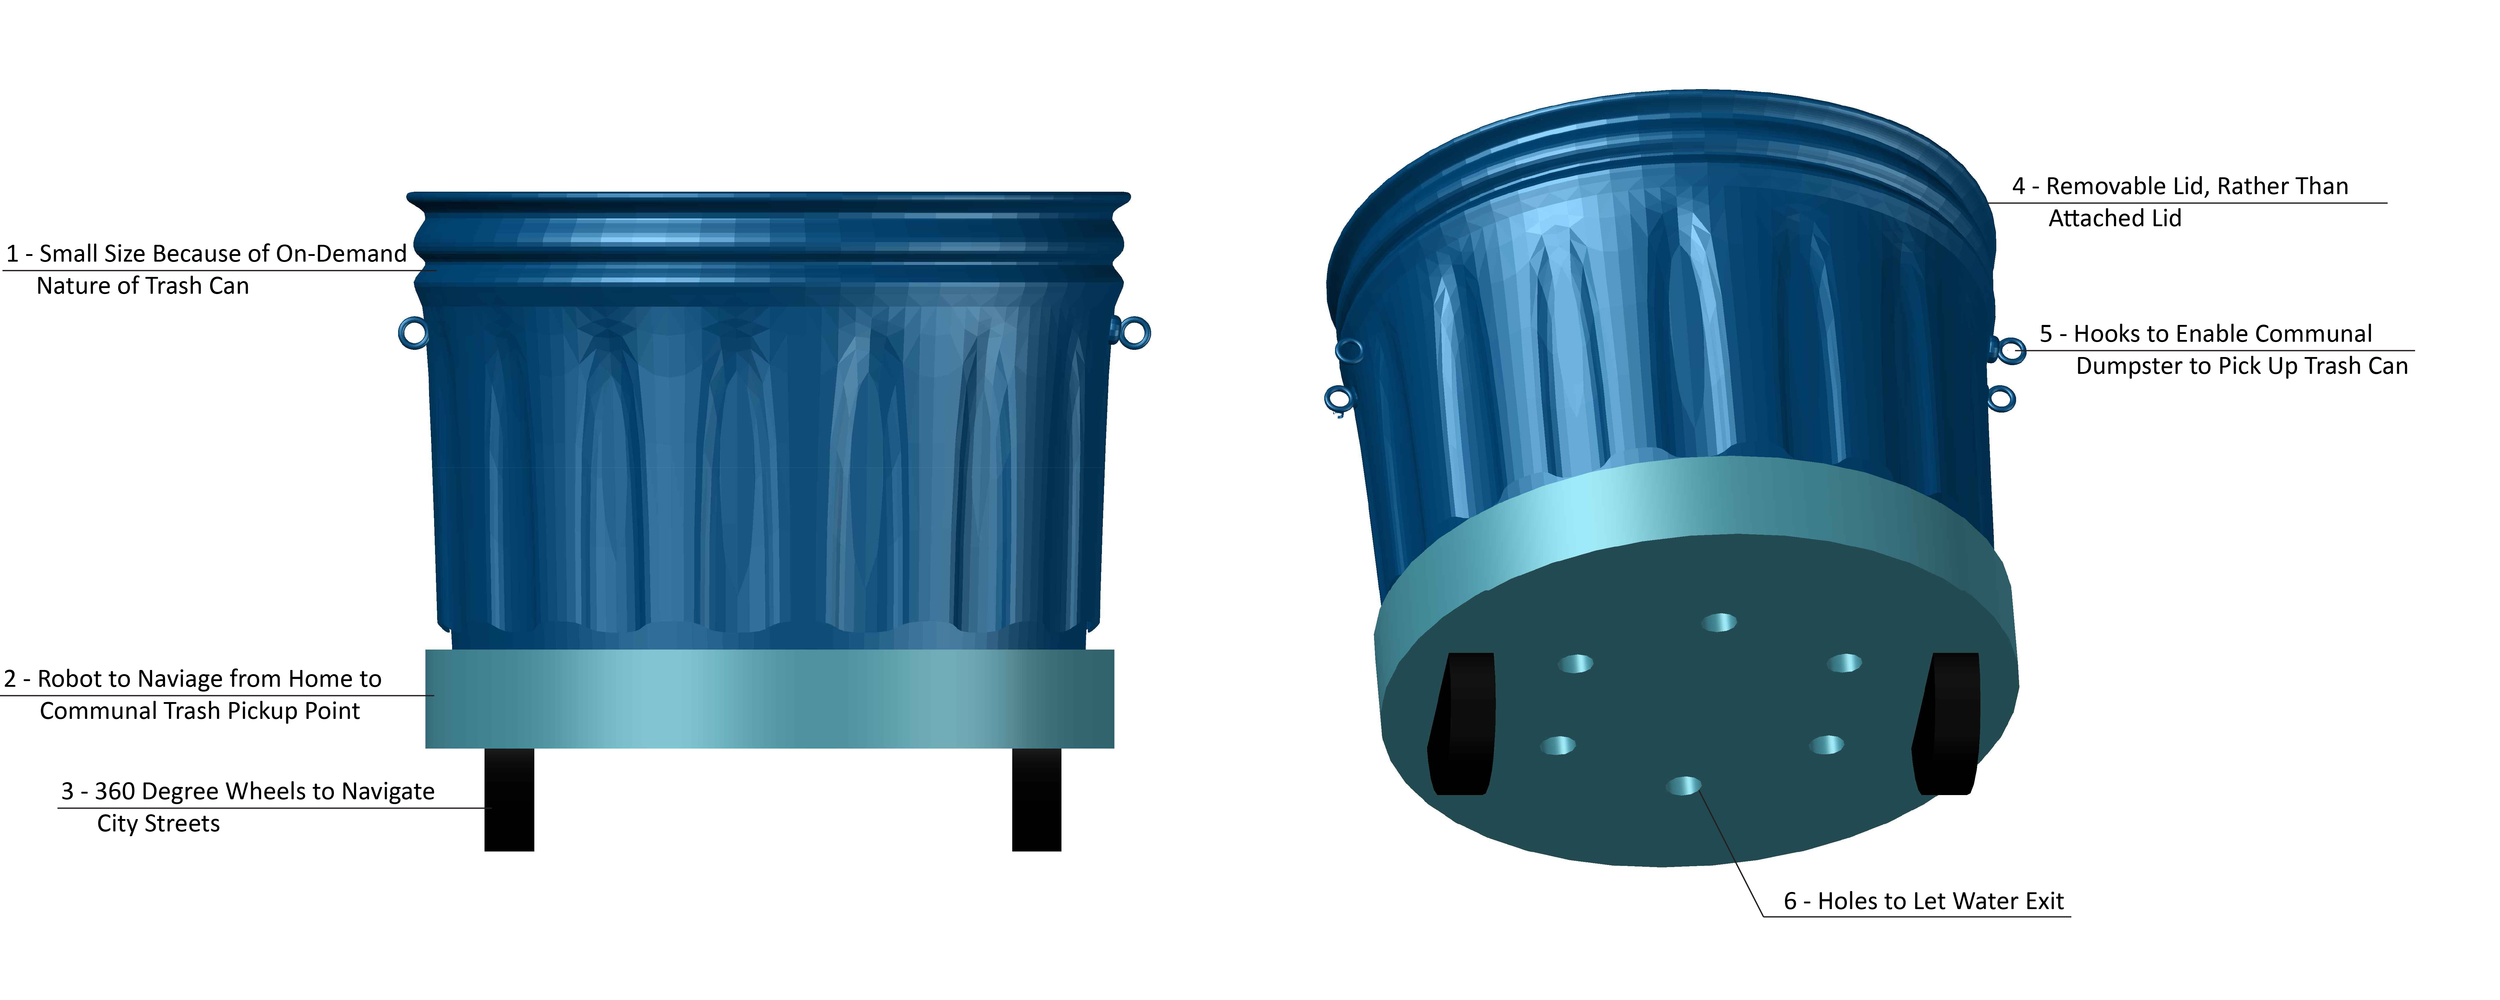 Our team's redesigned trash can. We envision this new, wheeled trash can driving itself to a larger truck. The truck will then lift up the can and empty its contents before driving the trash to a landfill.